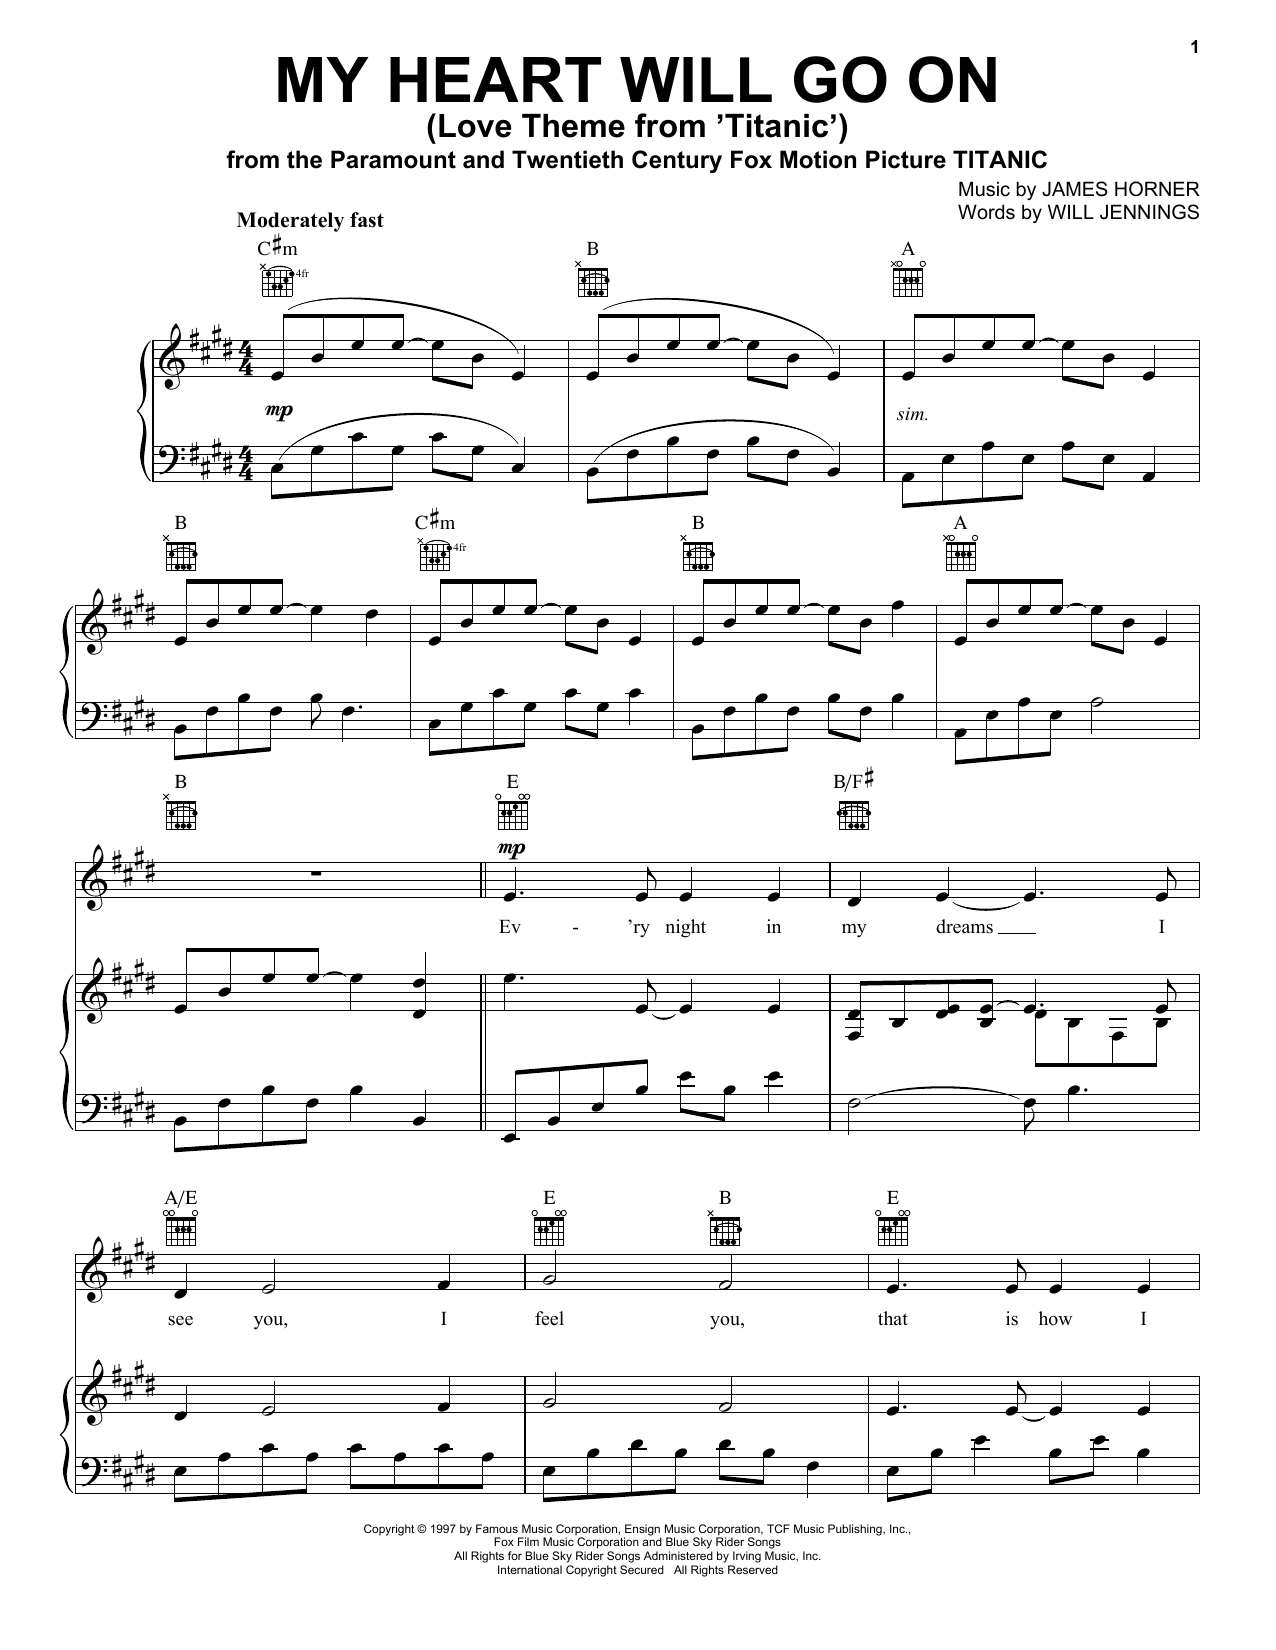 My Heart Will Go On (Love Theme from Titanic) sheet music by Celine Dion (Piano u0026 Vocal u2013 88725)